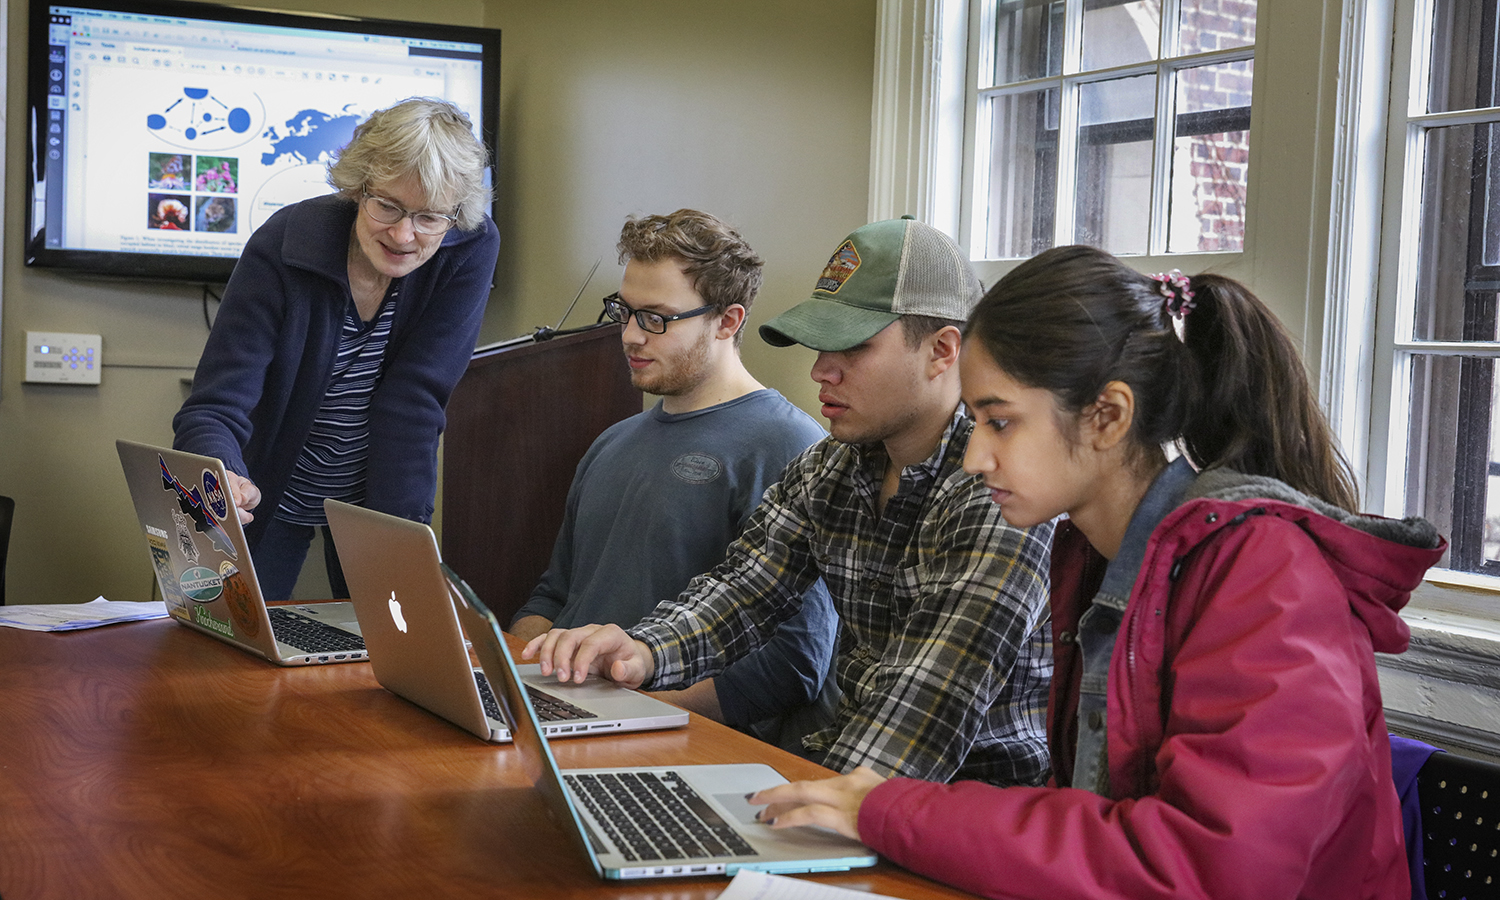 """Professor of Biology Beth Newell discusses species dispersal models in """"Biological Reponses to Climate Change"""" with Luke Pfund '18, Dan Robeson '18 and Shweta Patel '18 during a Biology senior seminar in Coxe Hall."""